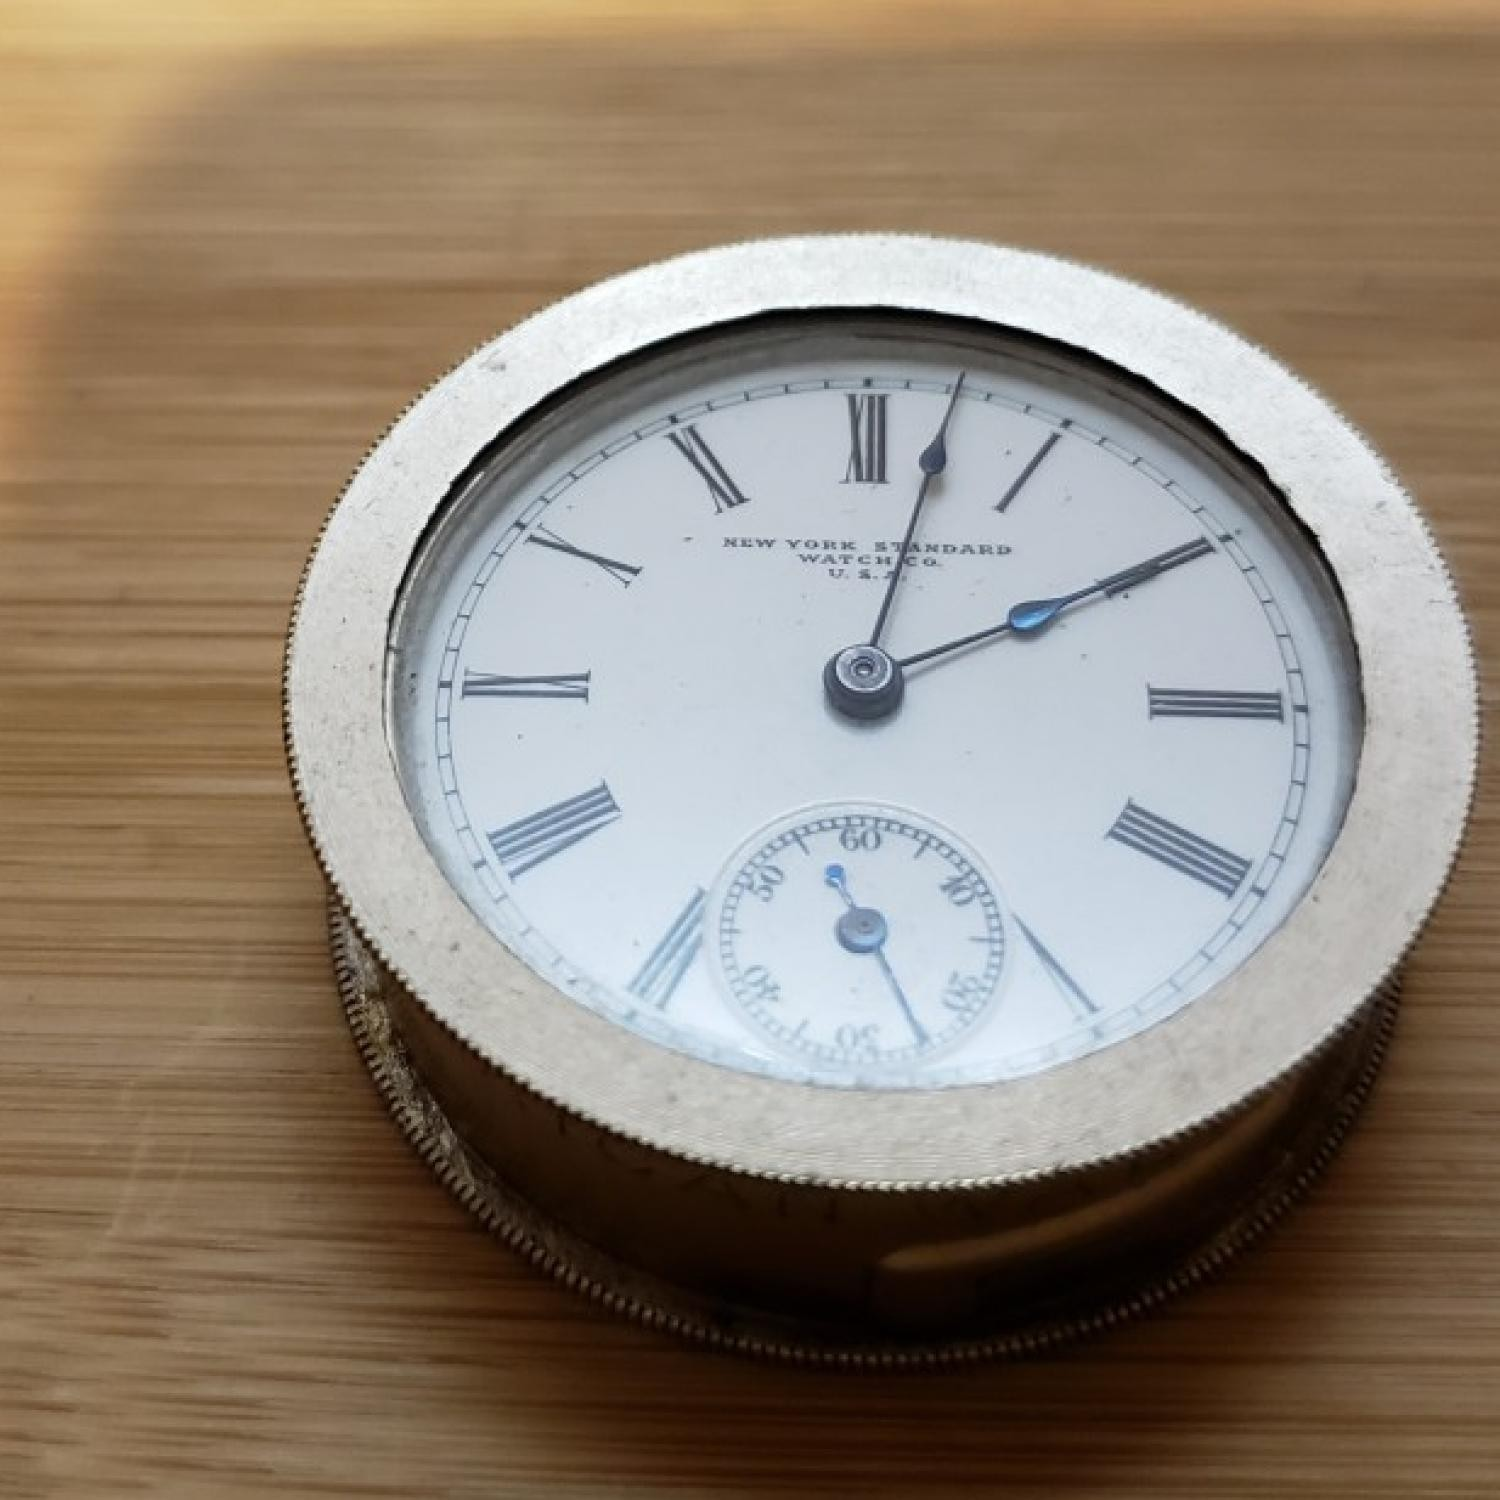 Image of New York Standard Watch Co.  #4746572 Dial